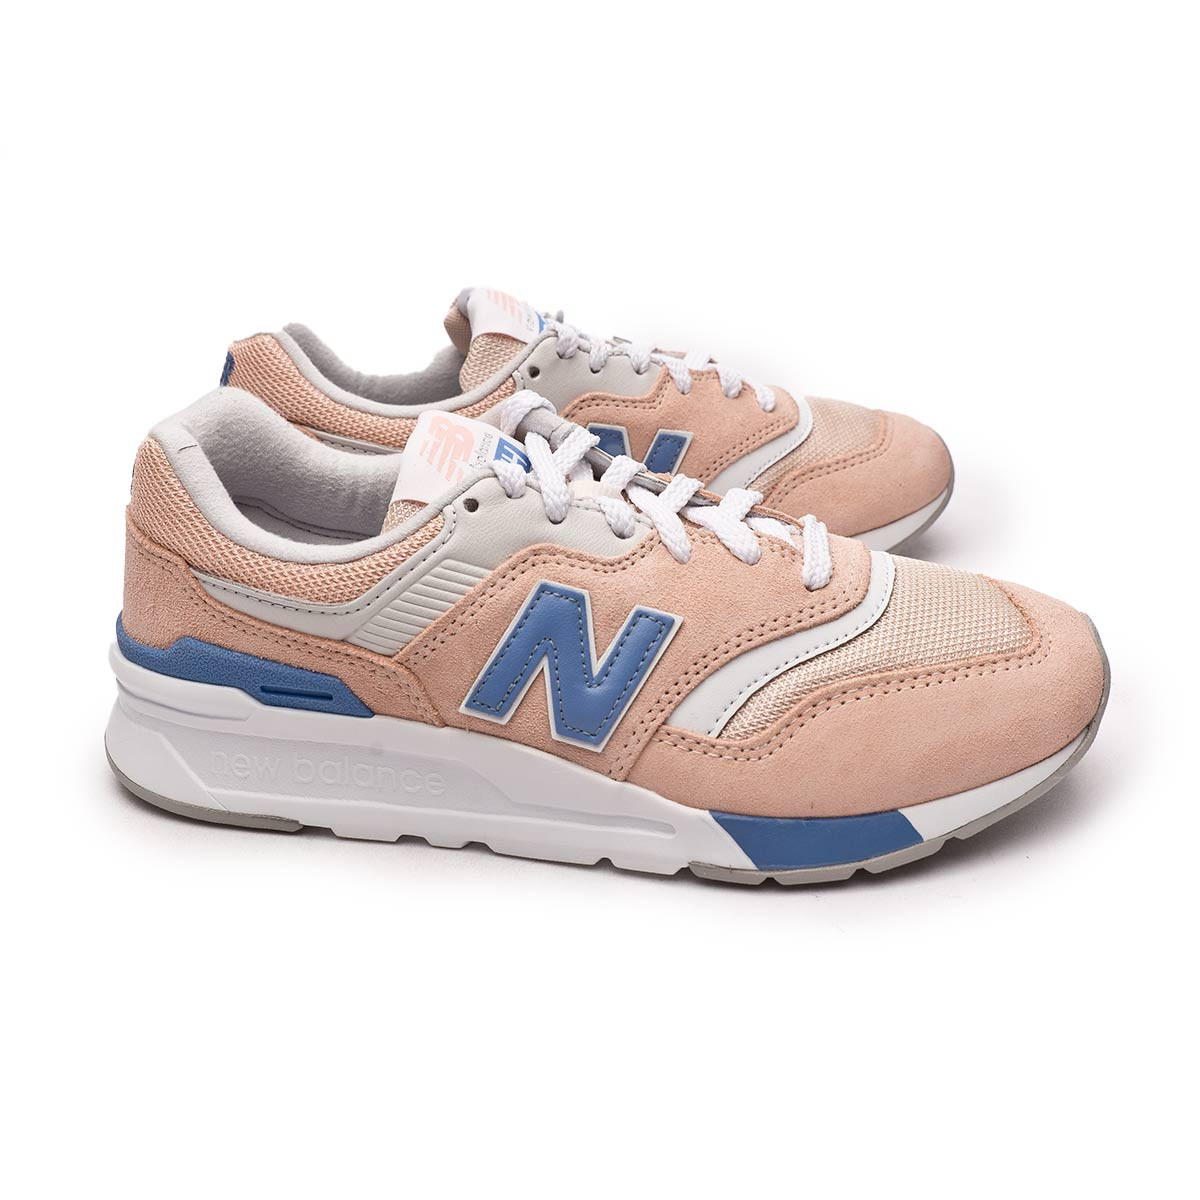 New Balance Classic 997H v1 Mujer Trainers